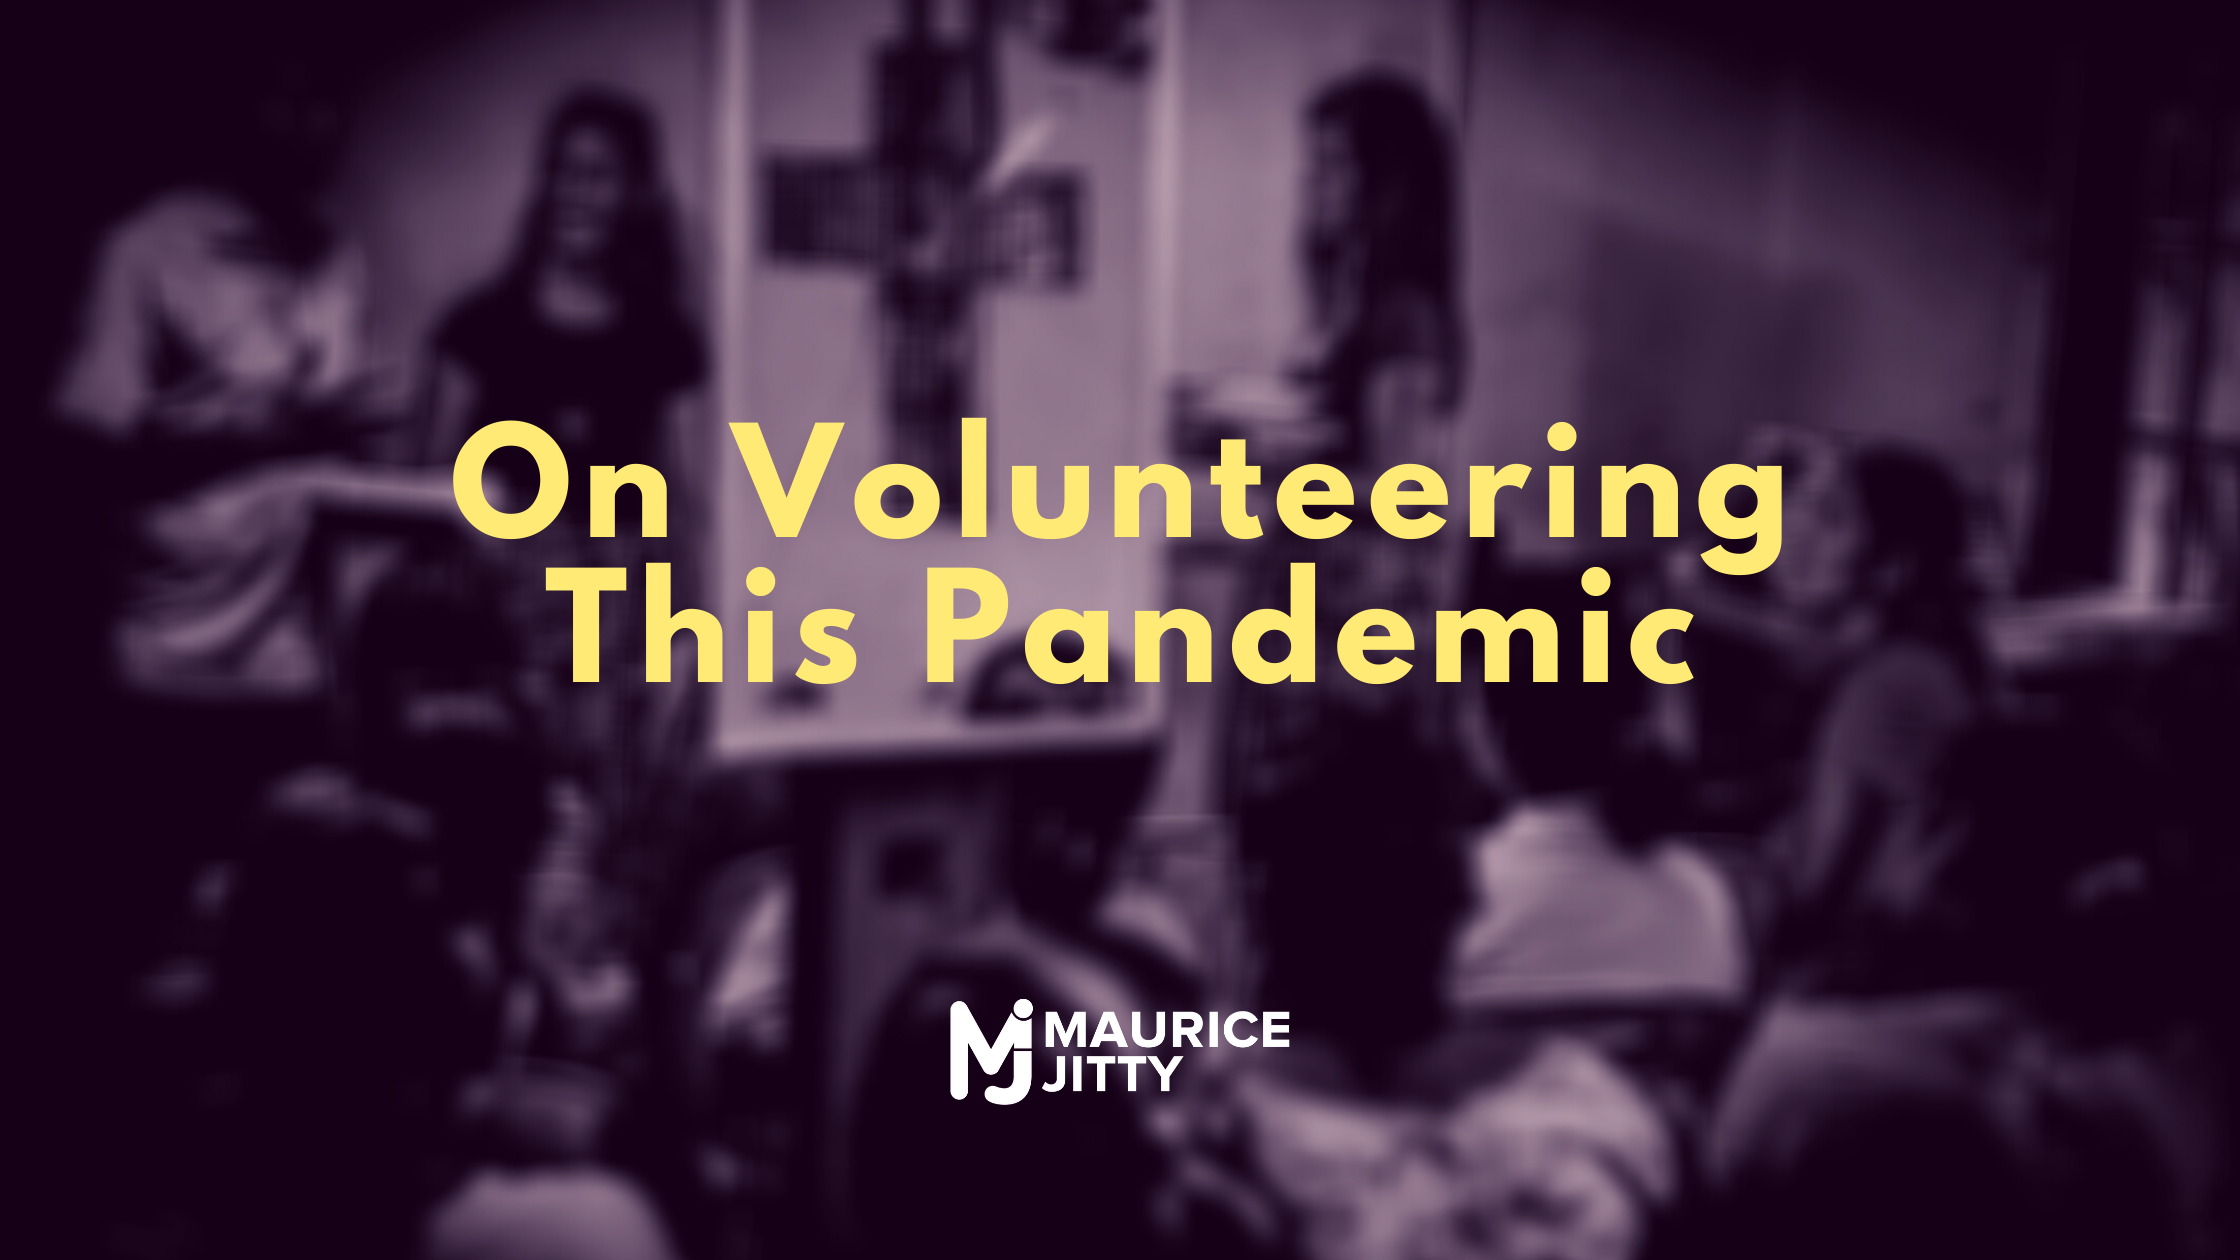 On Volunteering This Pandemic